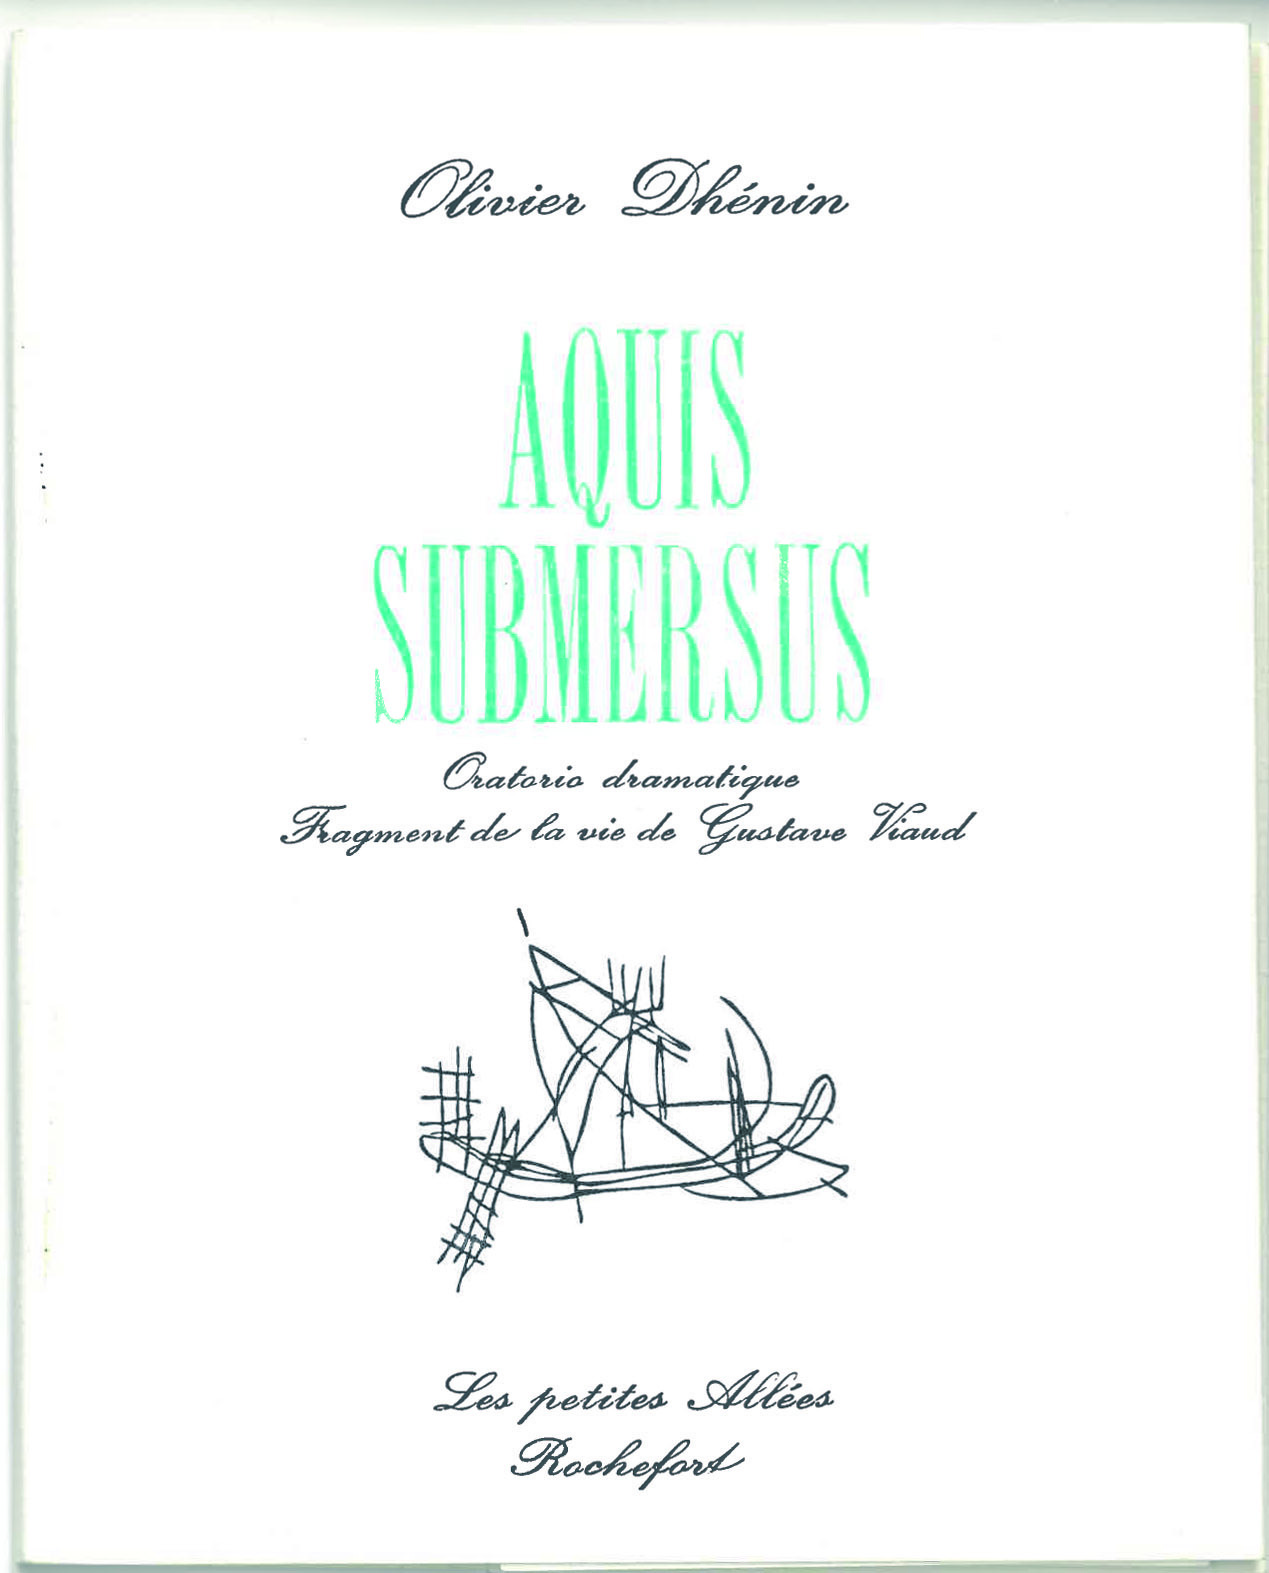 AQUIS SUBMERSUS : ORATORIO DRAMATIQUE, FRAGMENTS DE LA VIE DE GUSTAVE VIAUD